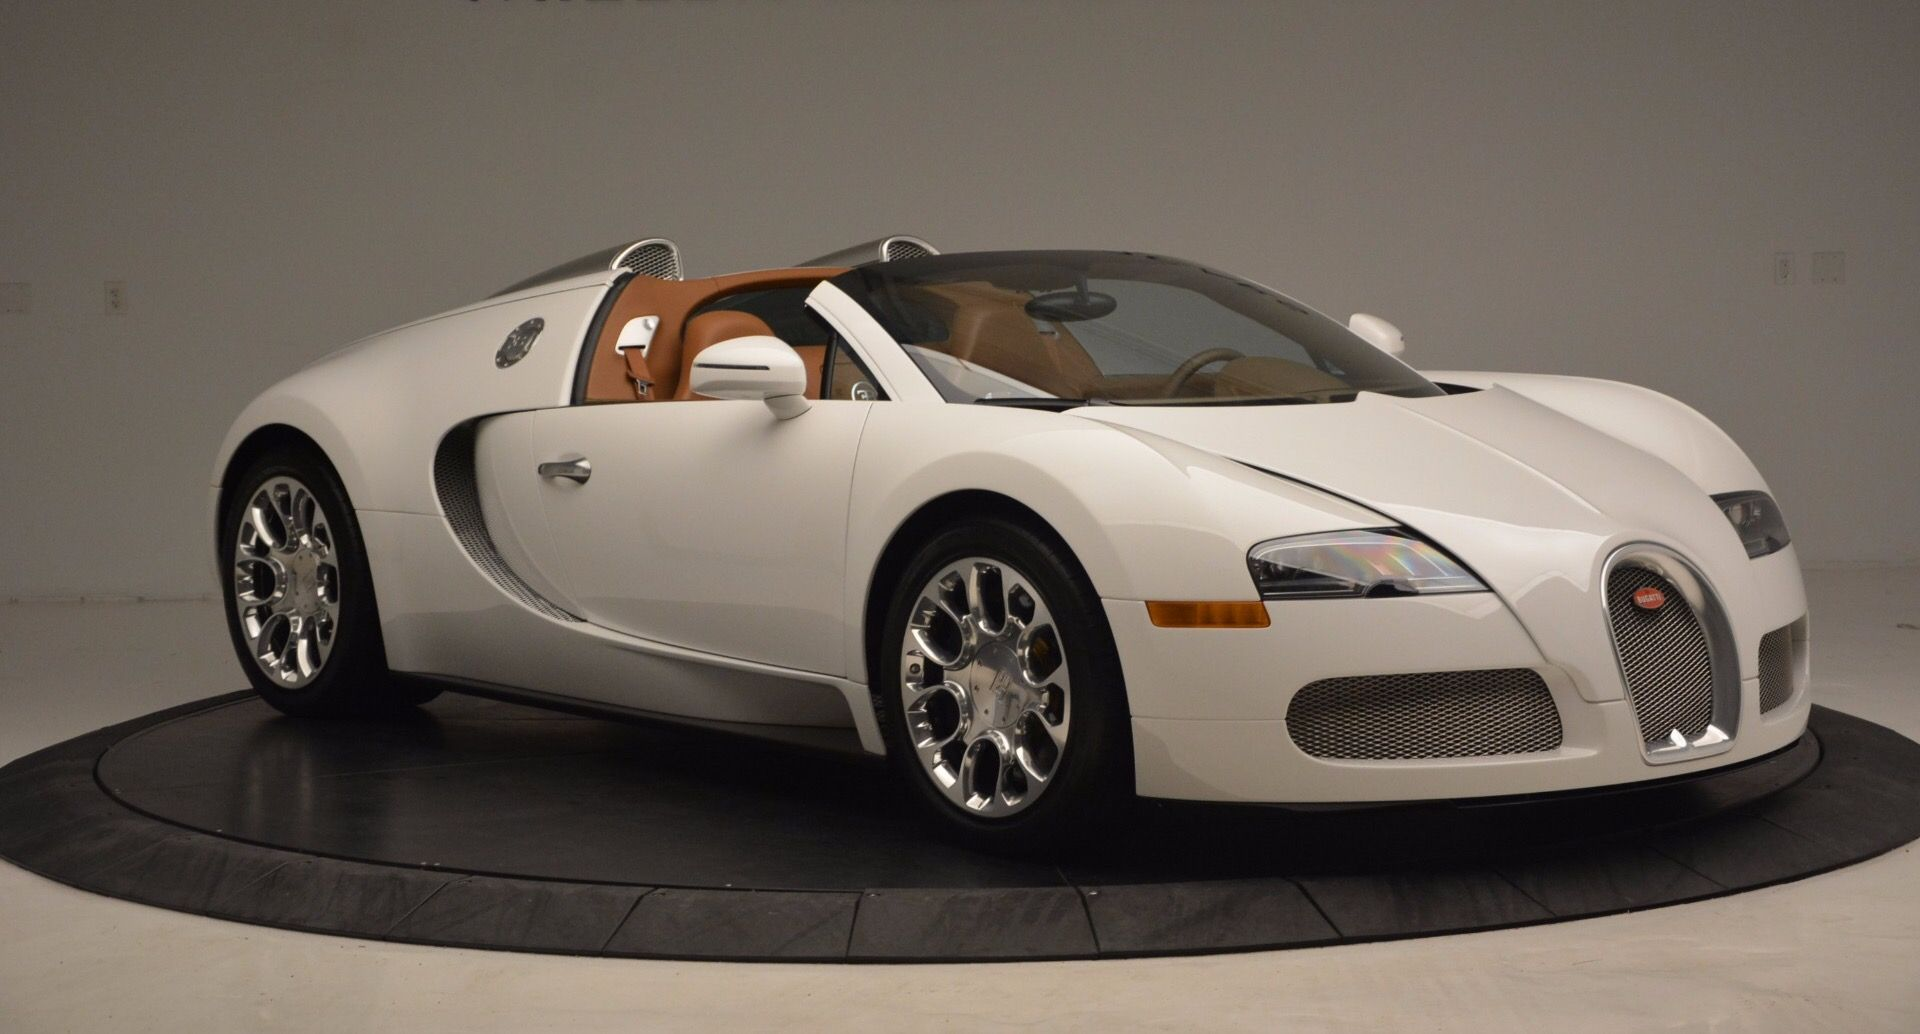 medium resolution of 2011 bugatti veyron 16 4 grand sport for sale at miller motorcars rh pinterest com bugatti veyron concept bugatti veyron outline